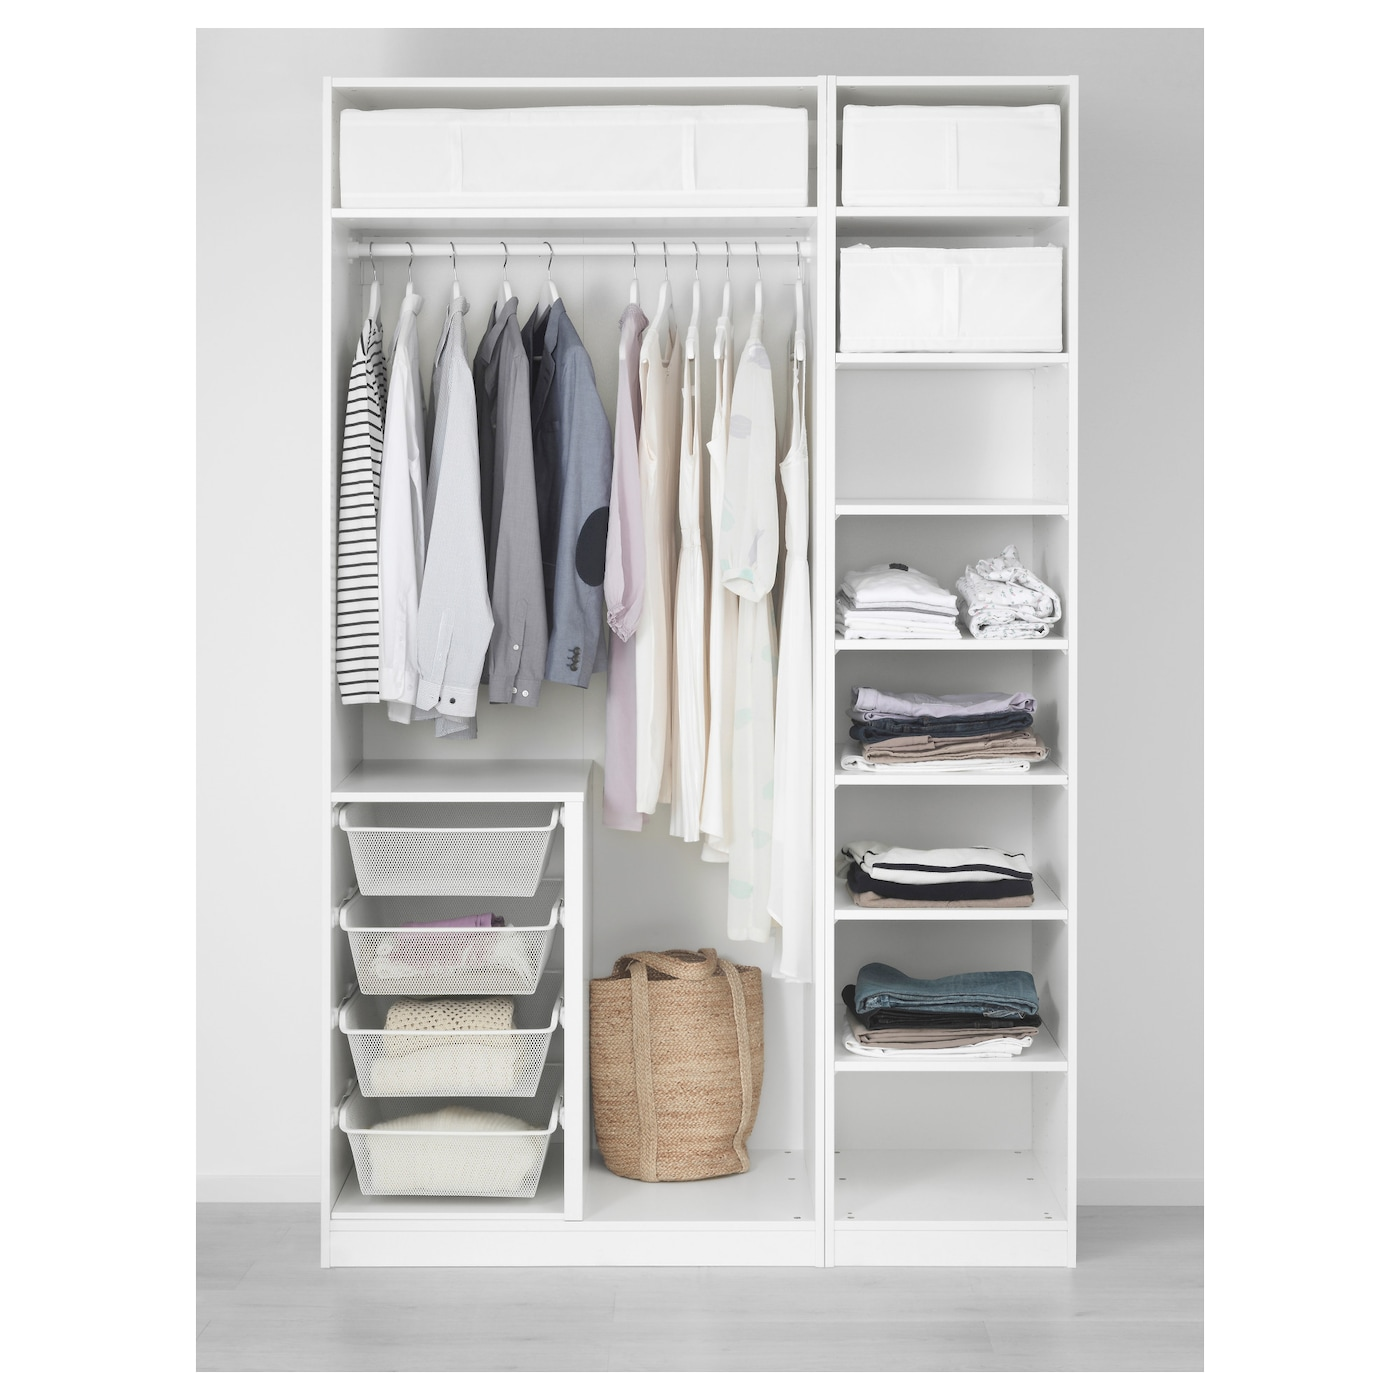 pax wardrobe white 150x58x236 cm ikea. Black Bedroom Furniture Sets. Home Design Ideas